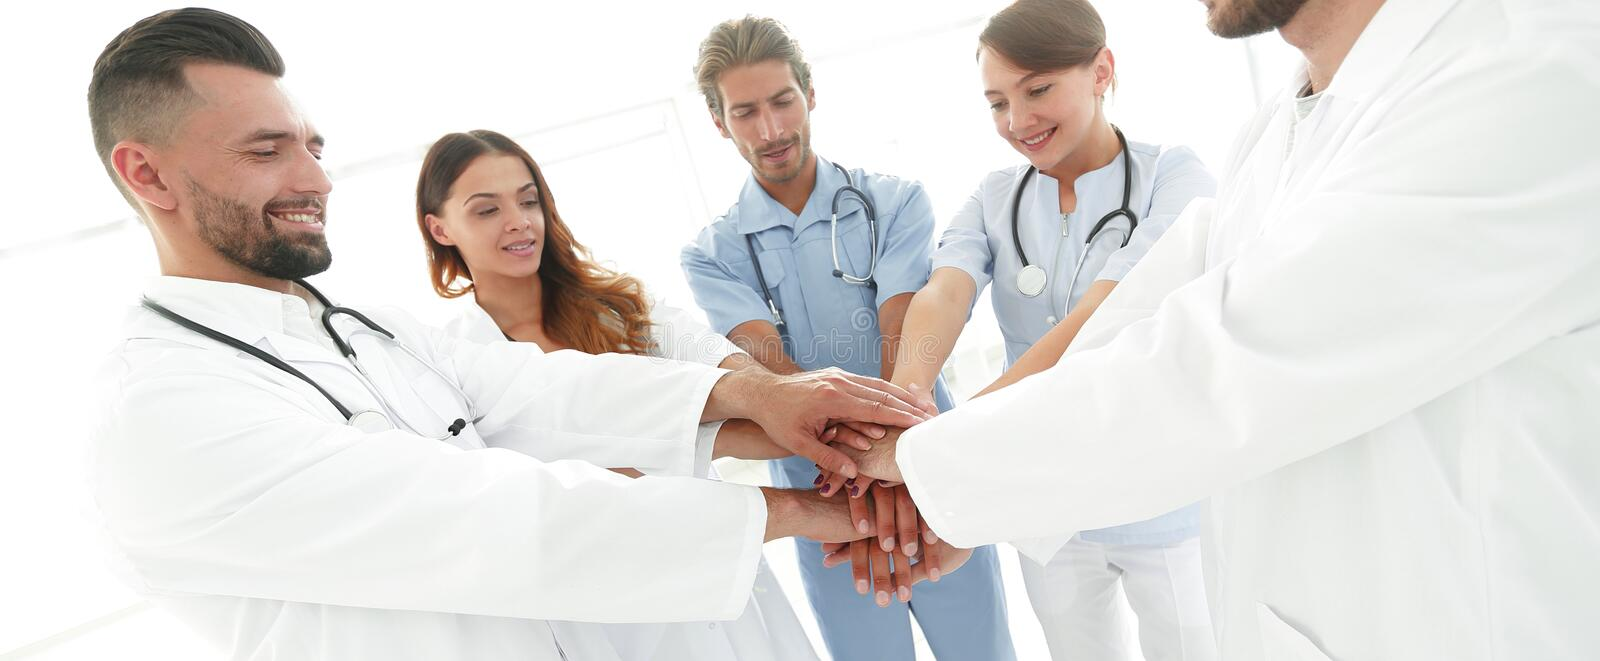 Background image of a successful group of doctors on a white background. Photo with copy space stock image